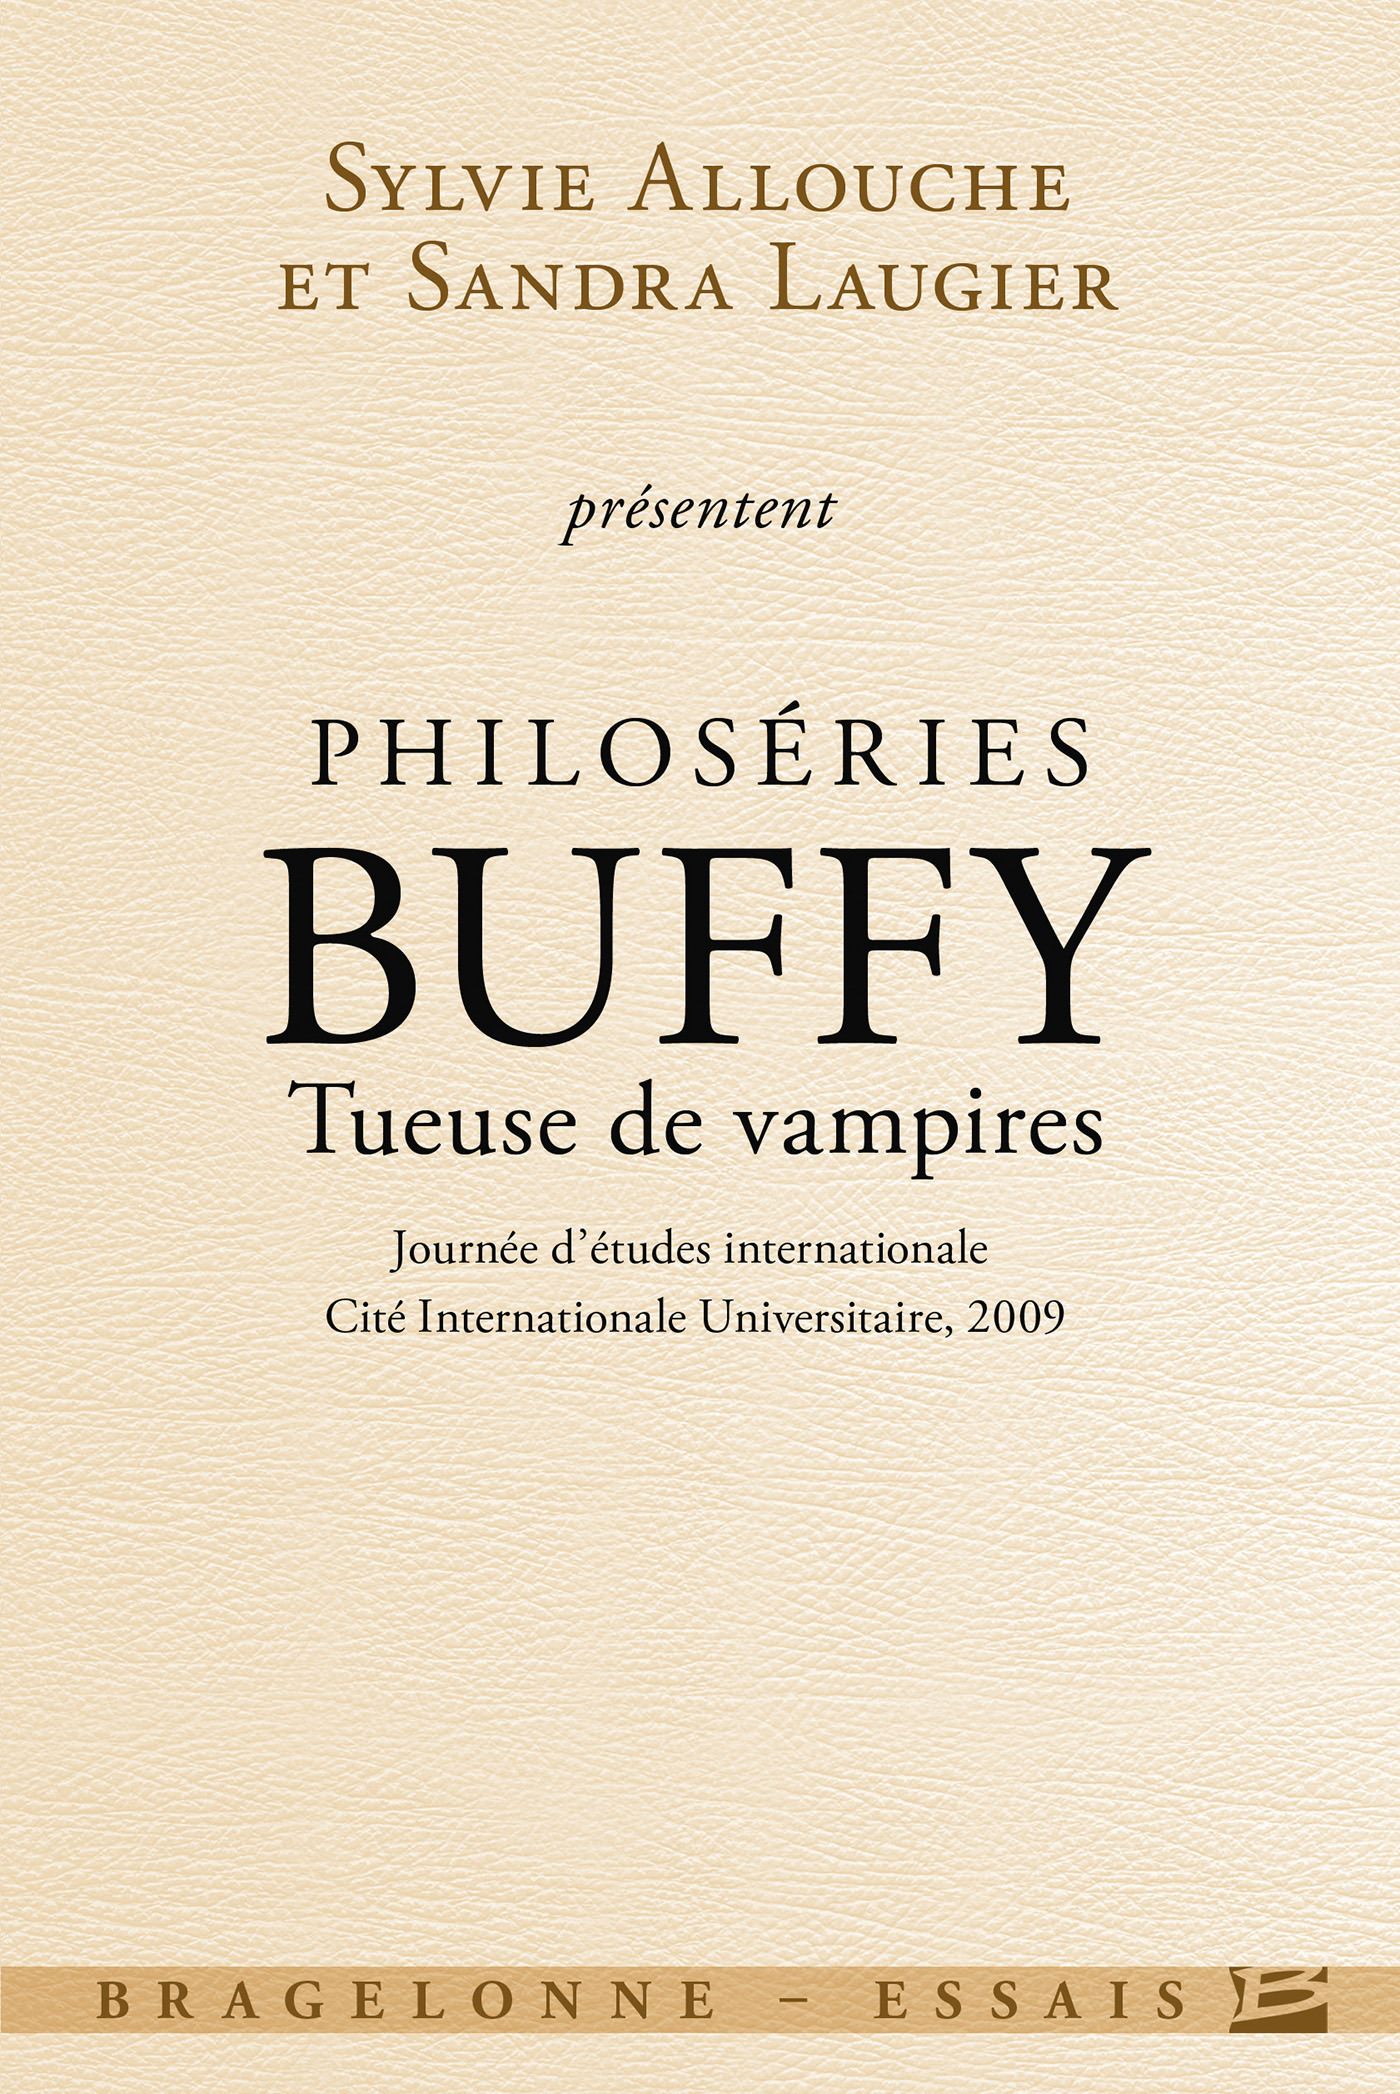 Philoséries ; Buffy, tueuse de vampires